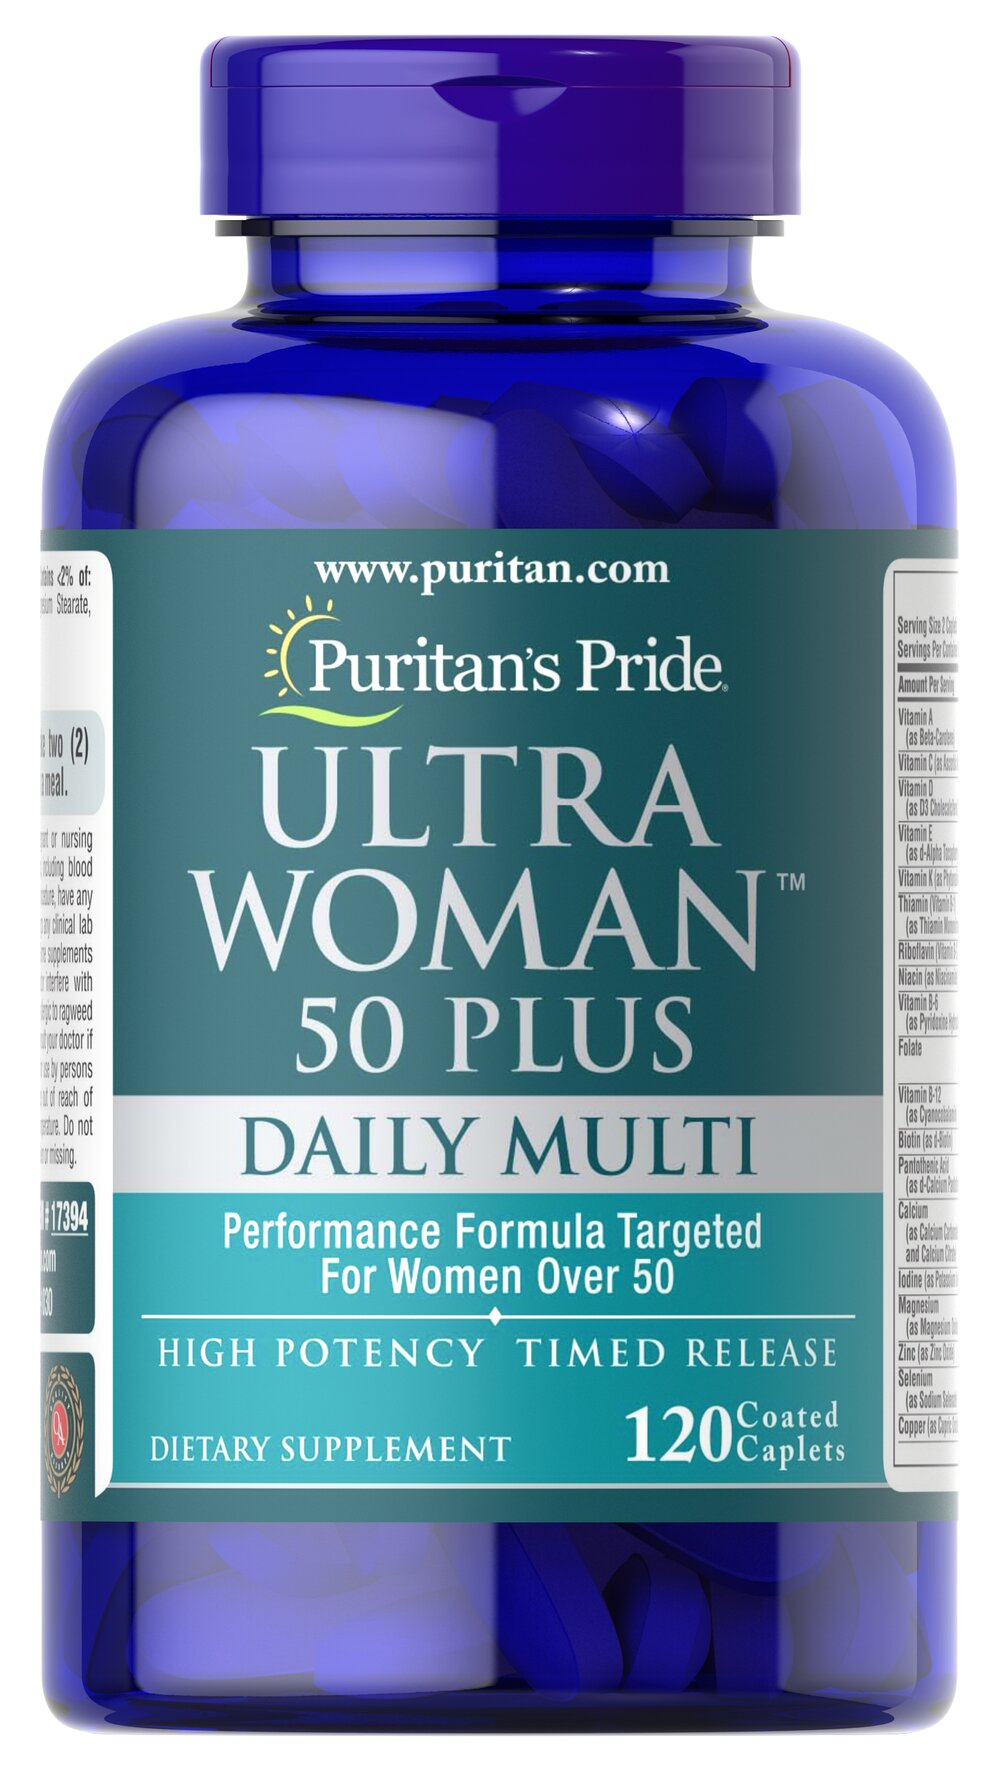 Ultra Woman™ 50 Plus Multi-Vitamin <p>A healthy aging formula designed for women over 50</p><p>High-potency caplets provide powerful antioxidant support**</p><p>Promotes strong, healthy bones**</p><p>Contributes to metabolic health and energy production**</p><p>Supports healthy hair, skin and nails**</p><p>Aids with breast and colon health**</p><p>Timed release formula provides a gradual release of nutrients, so you ca